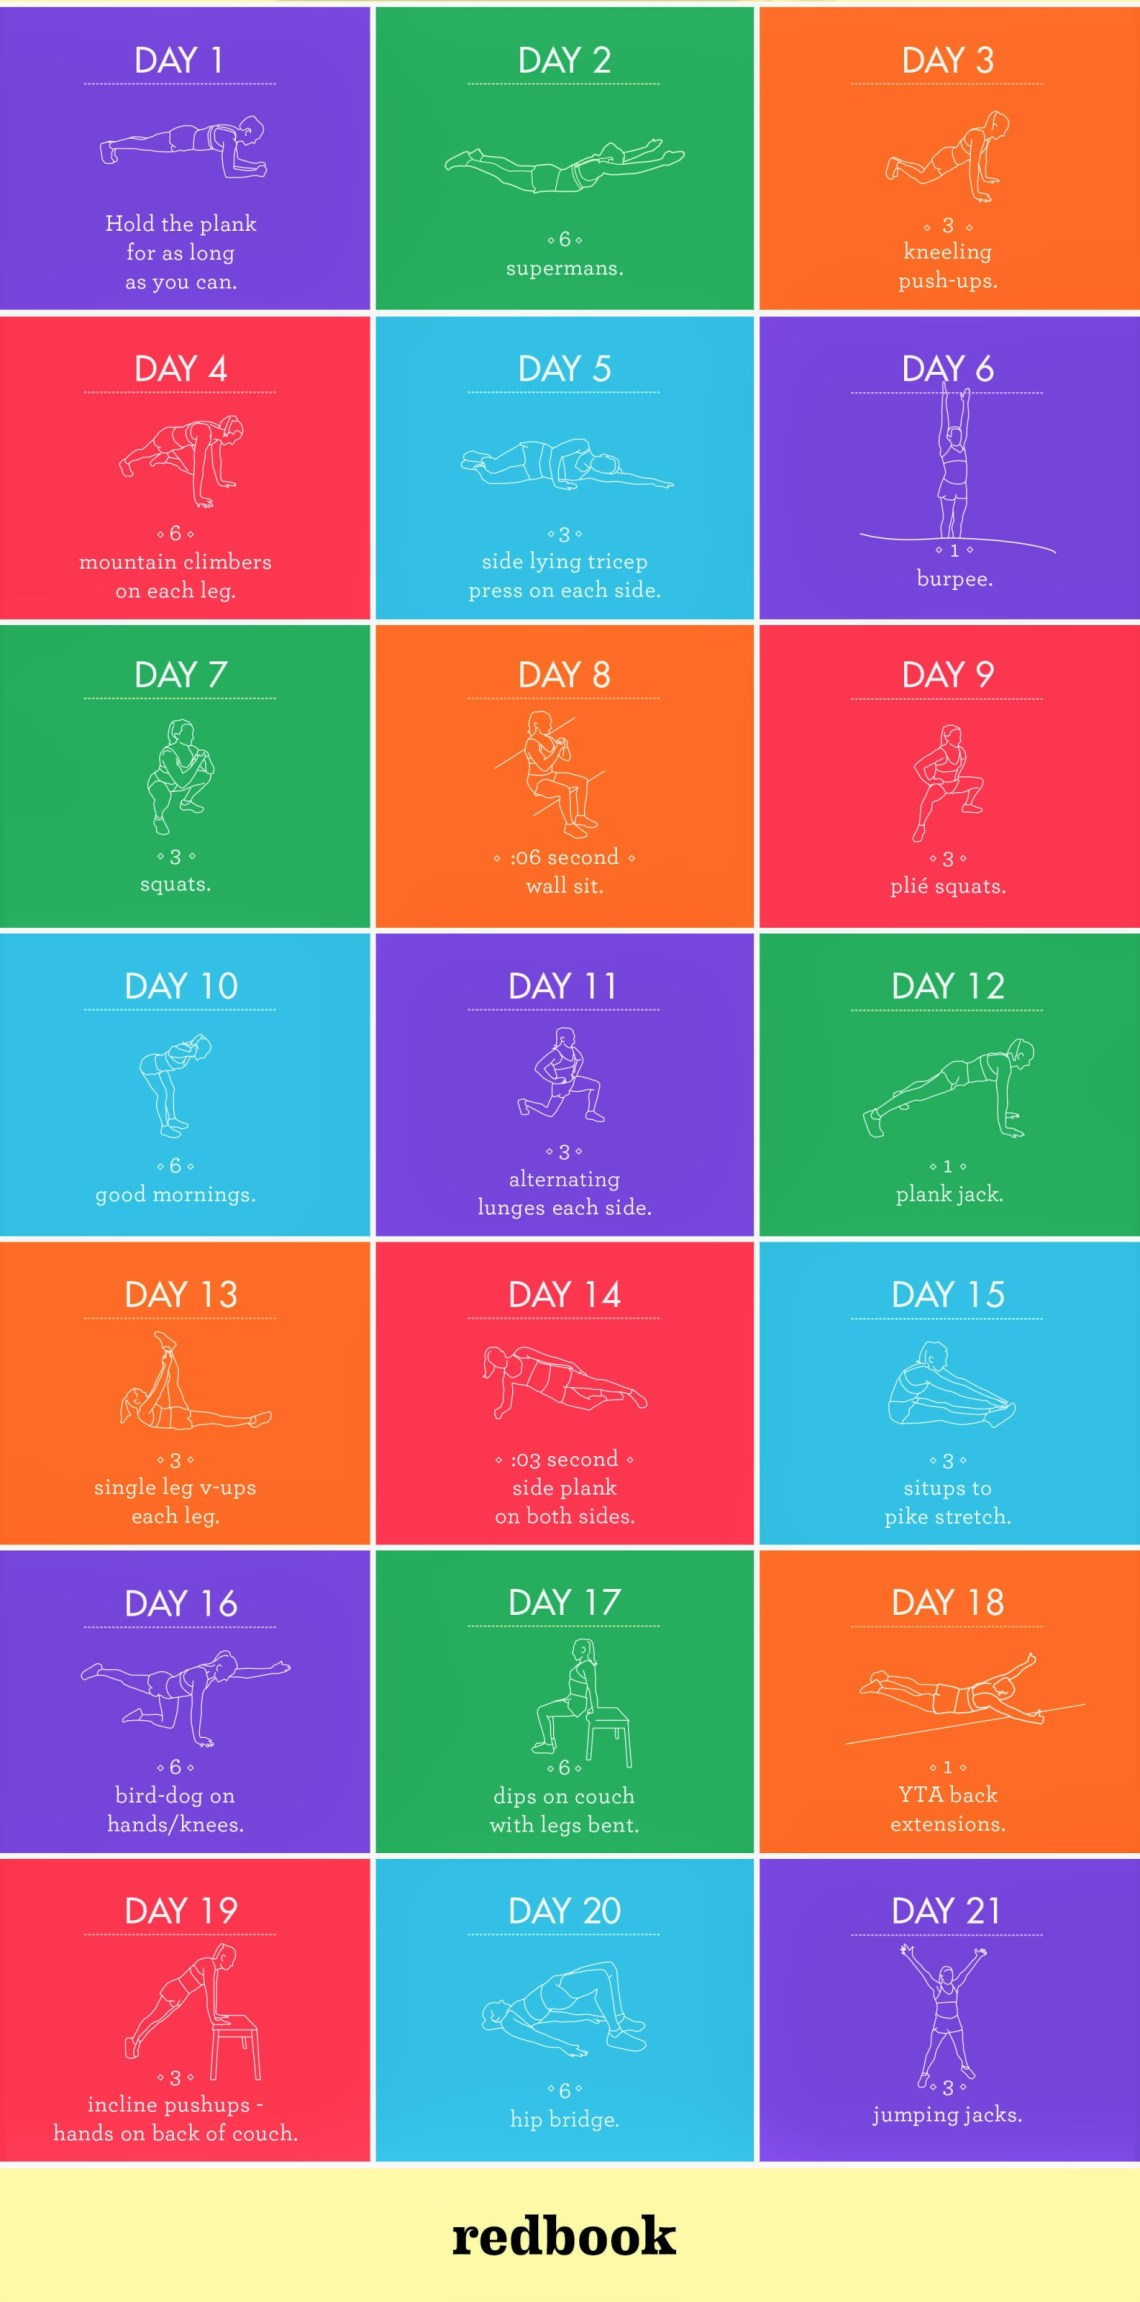 20 minute excersise to lose weight